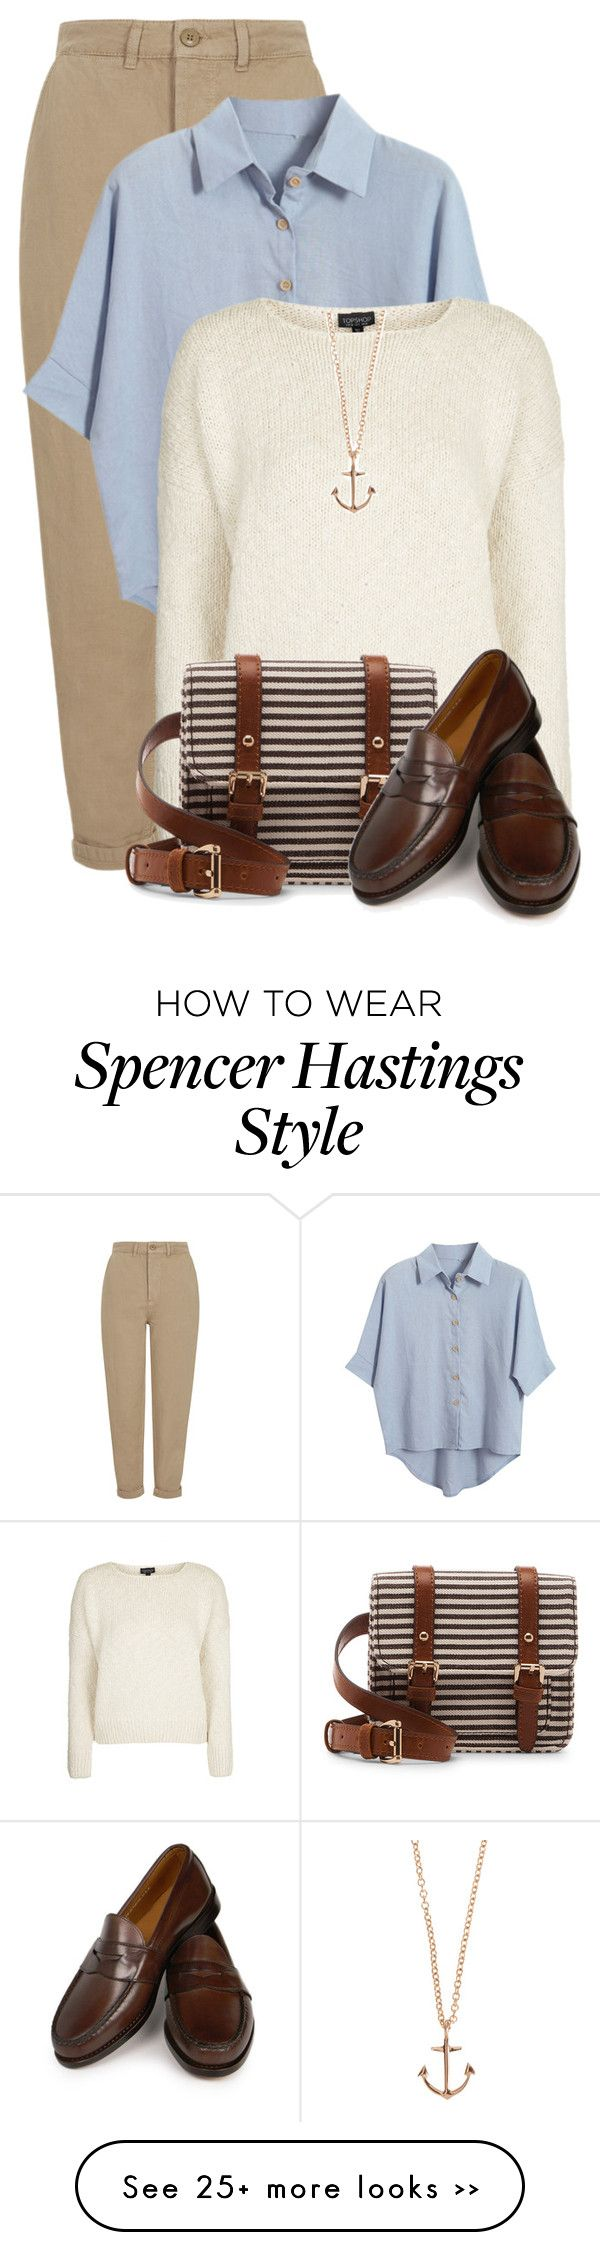 """""""spencer hastings"""" by alexa-girl2 on Polyvore"""